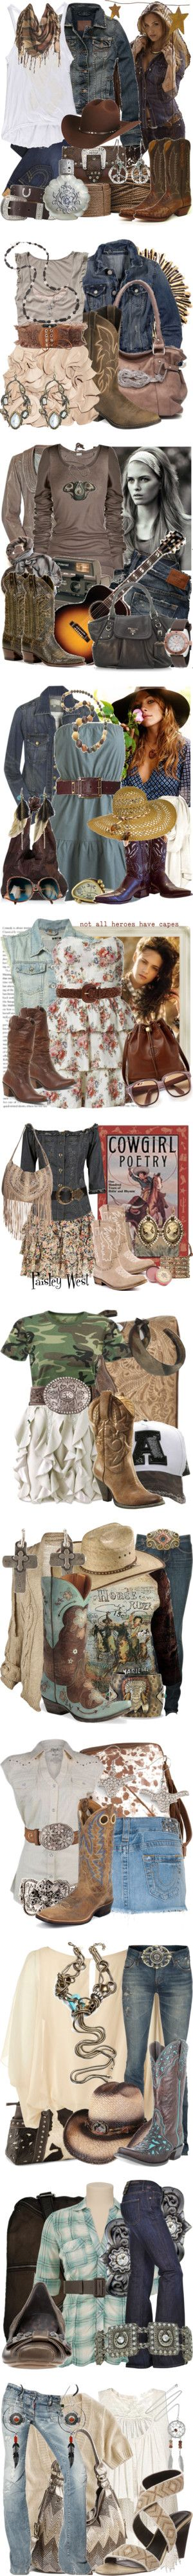 """Country & Western"" by saintcharlesstyle ❤ liked on Polyvore"